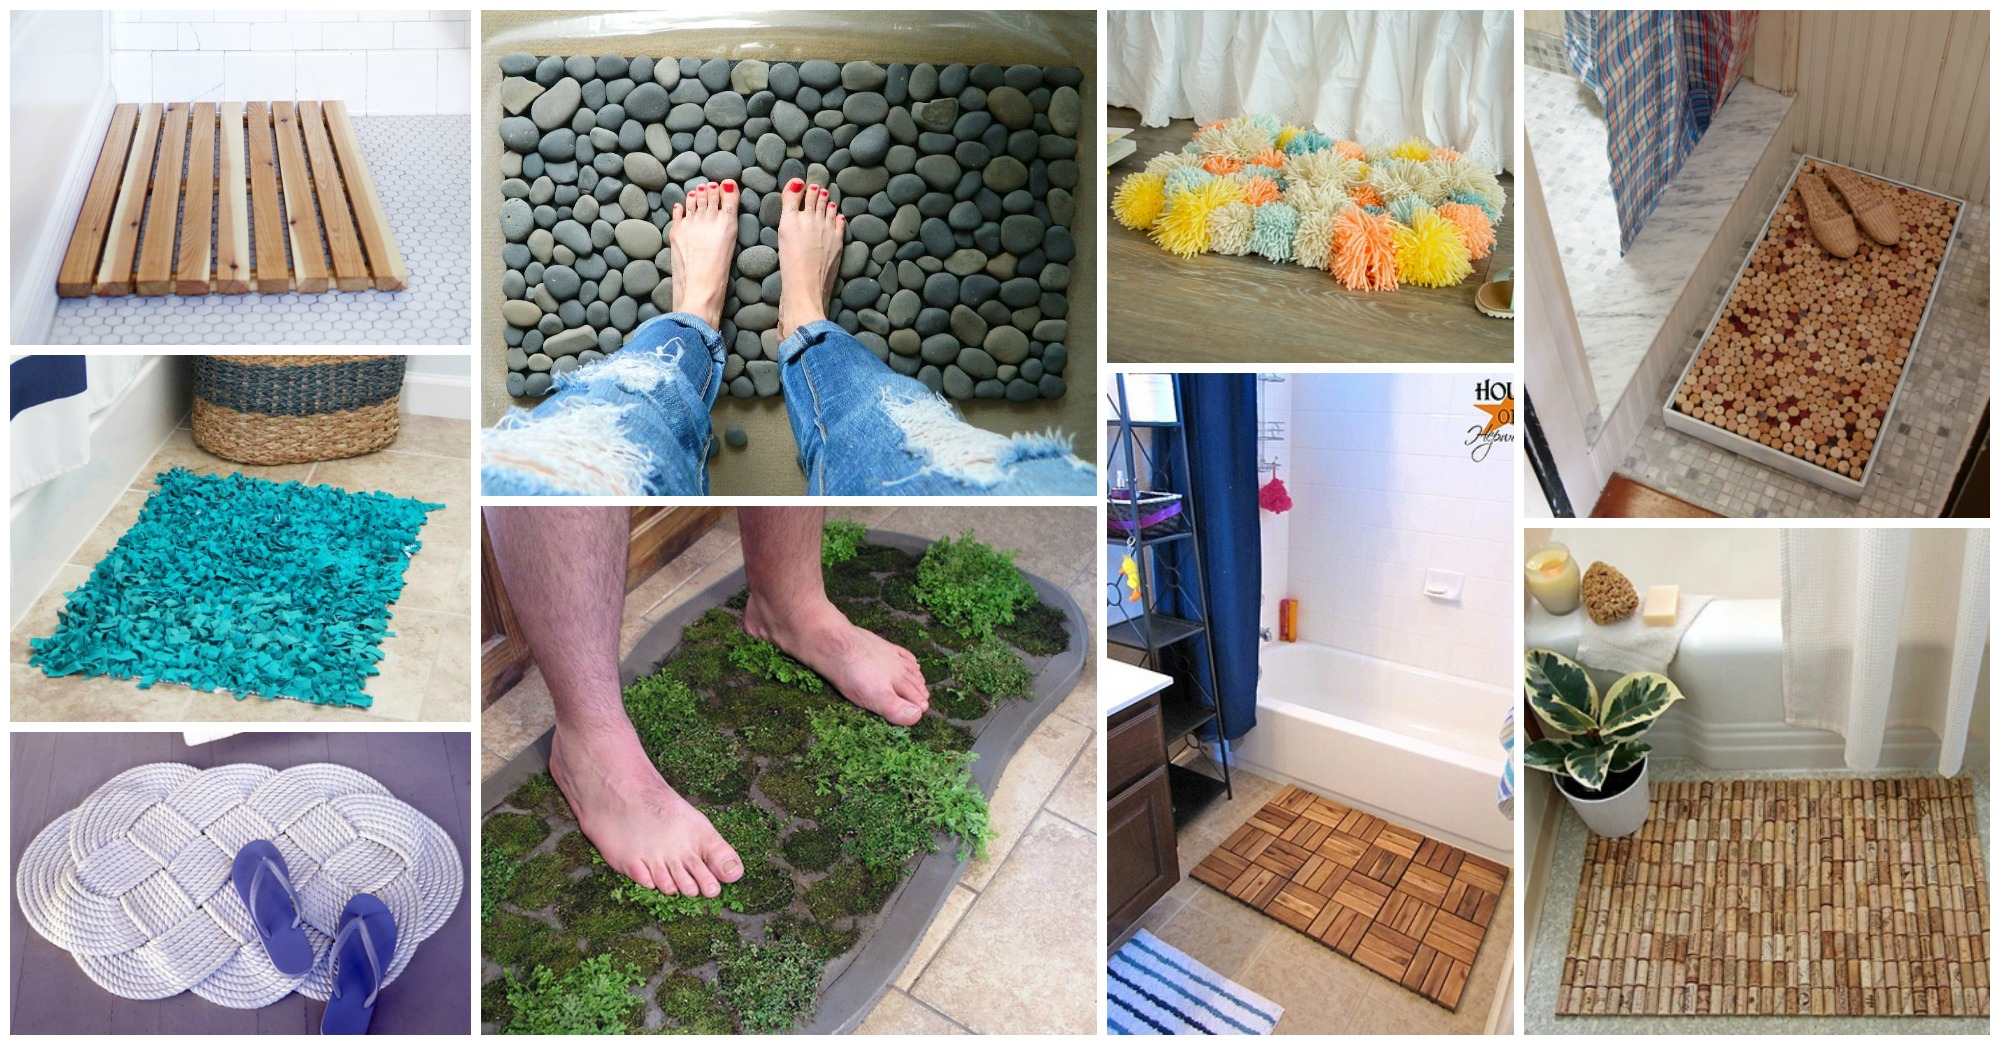 10 Creative DIY Shower Mats